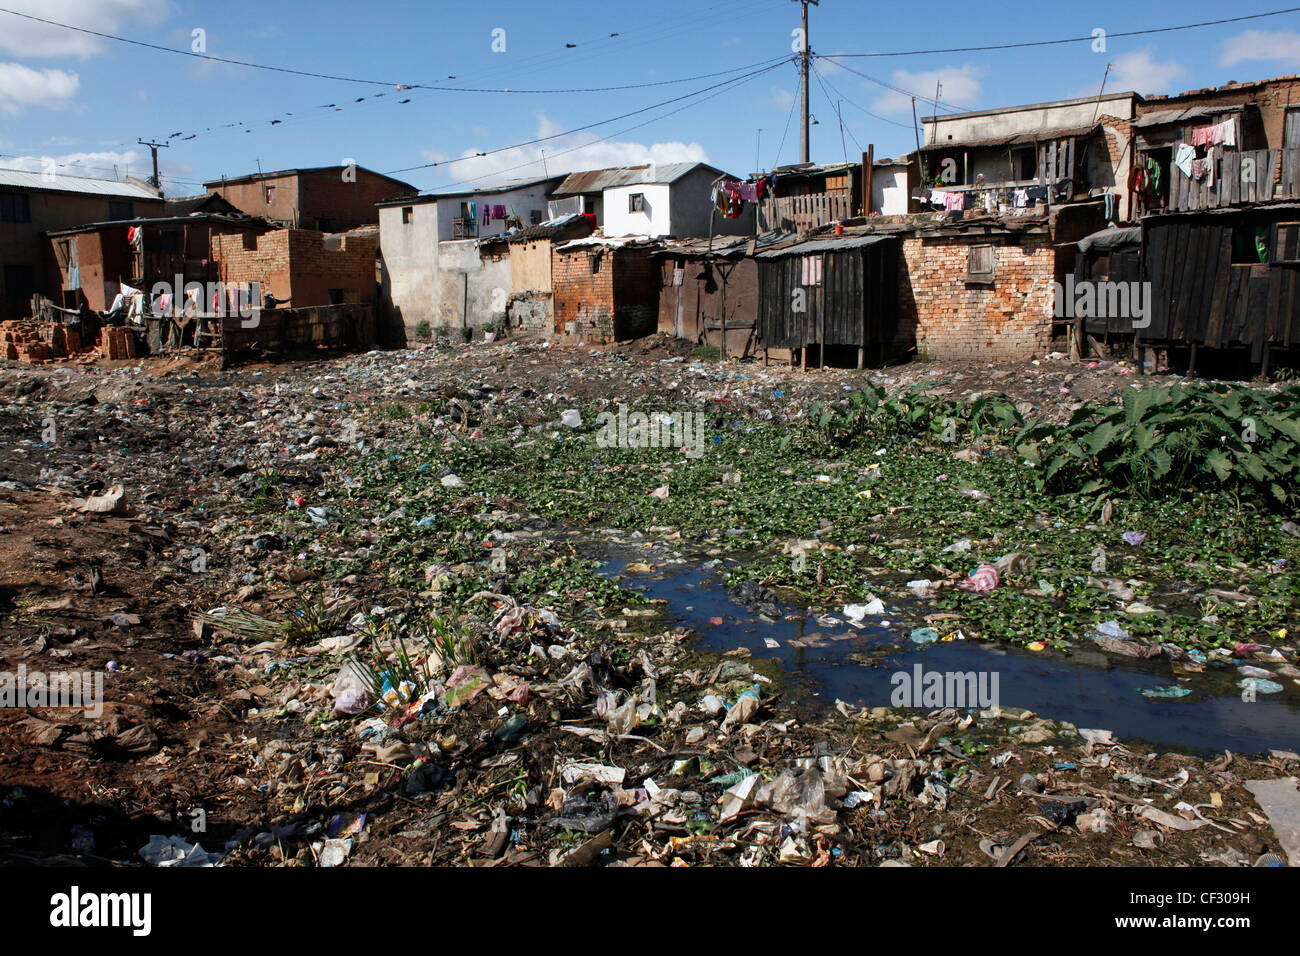 Un quartier résidentiel de la capitale, Antananarivo, Madagascar. Photo Stock